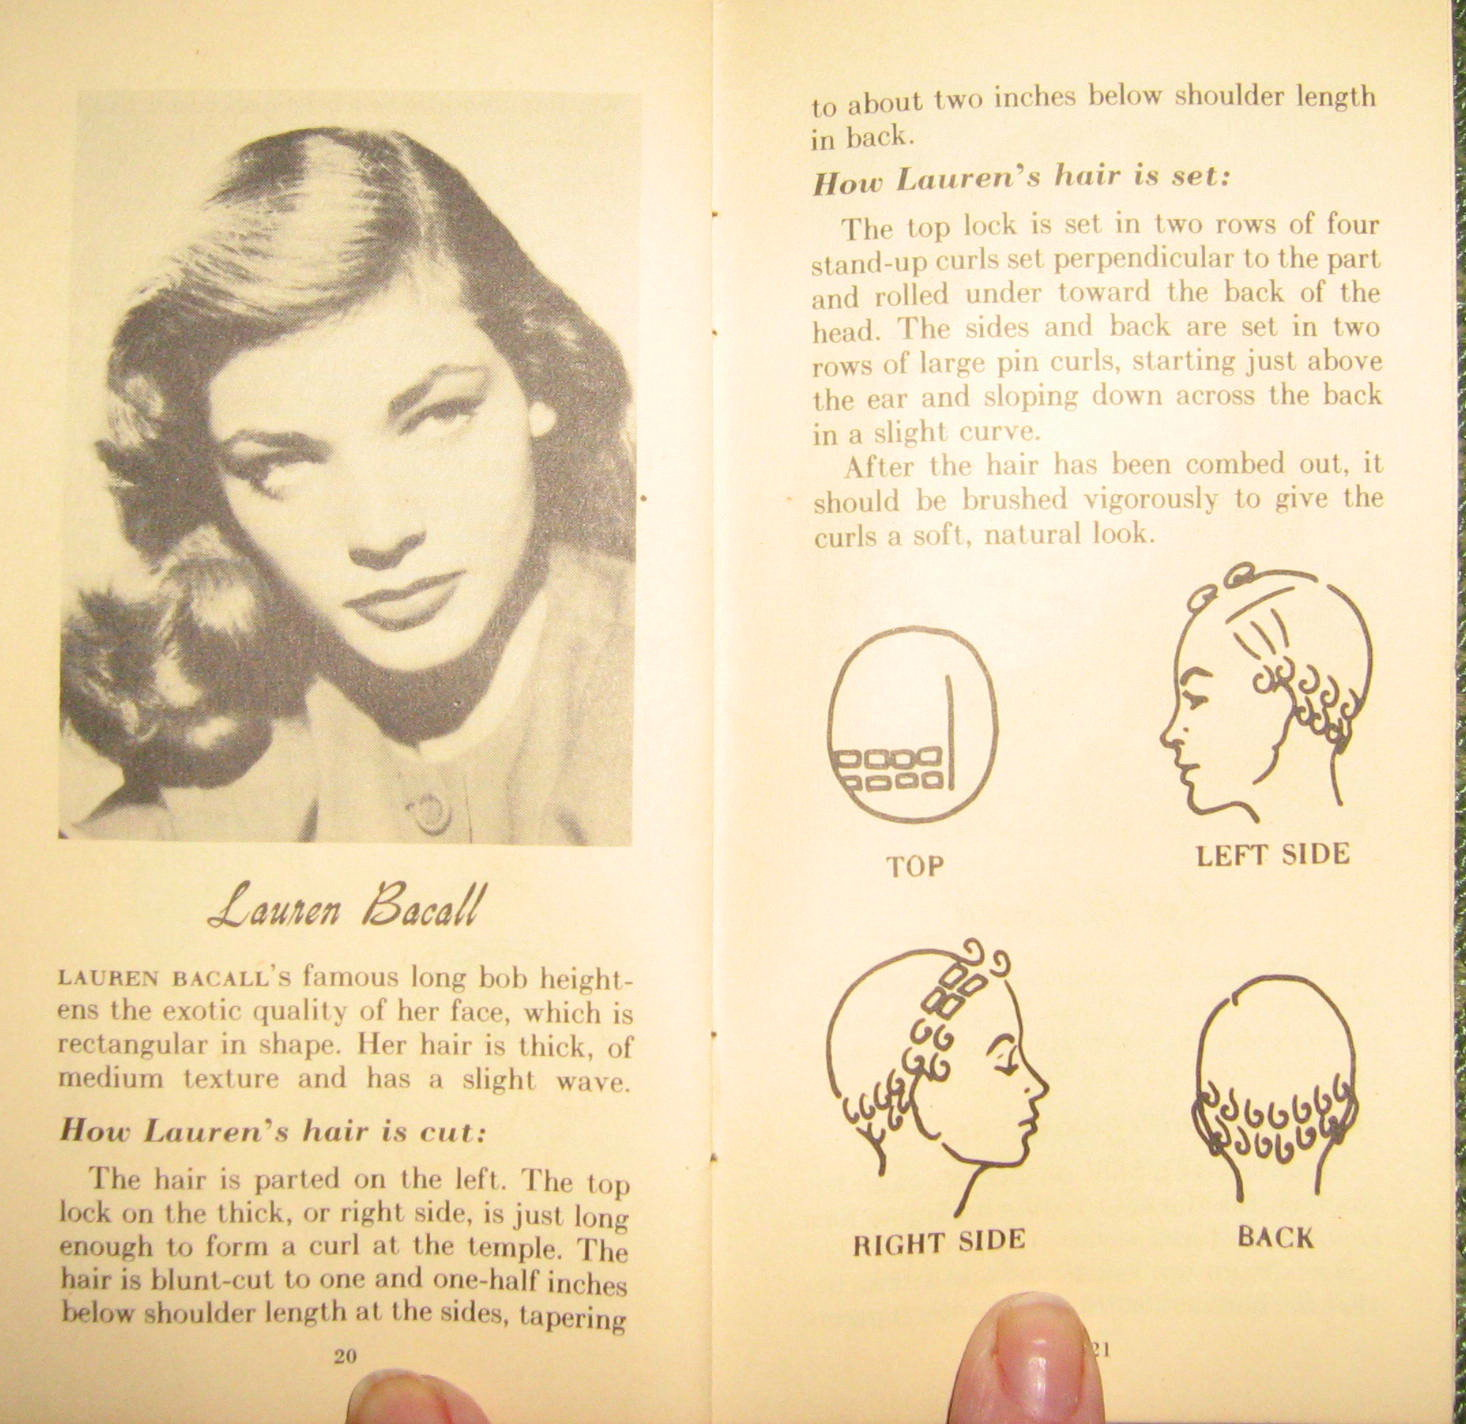 pin curl diagram craftsman dyt 4000 wiring victory vintage sets and lauren bacall hair